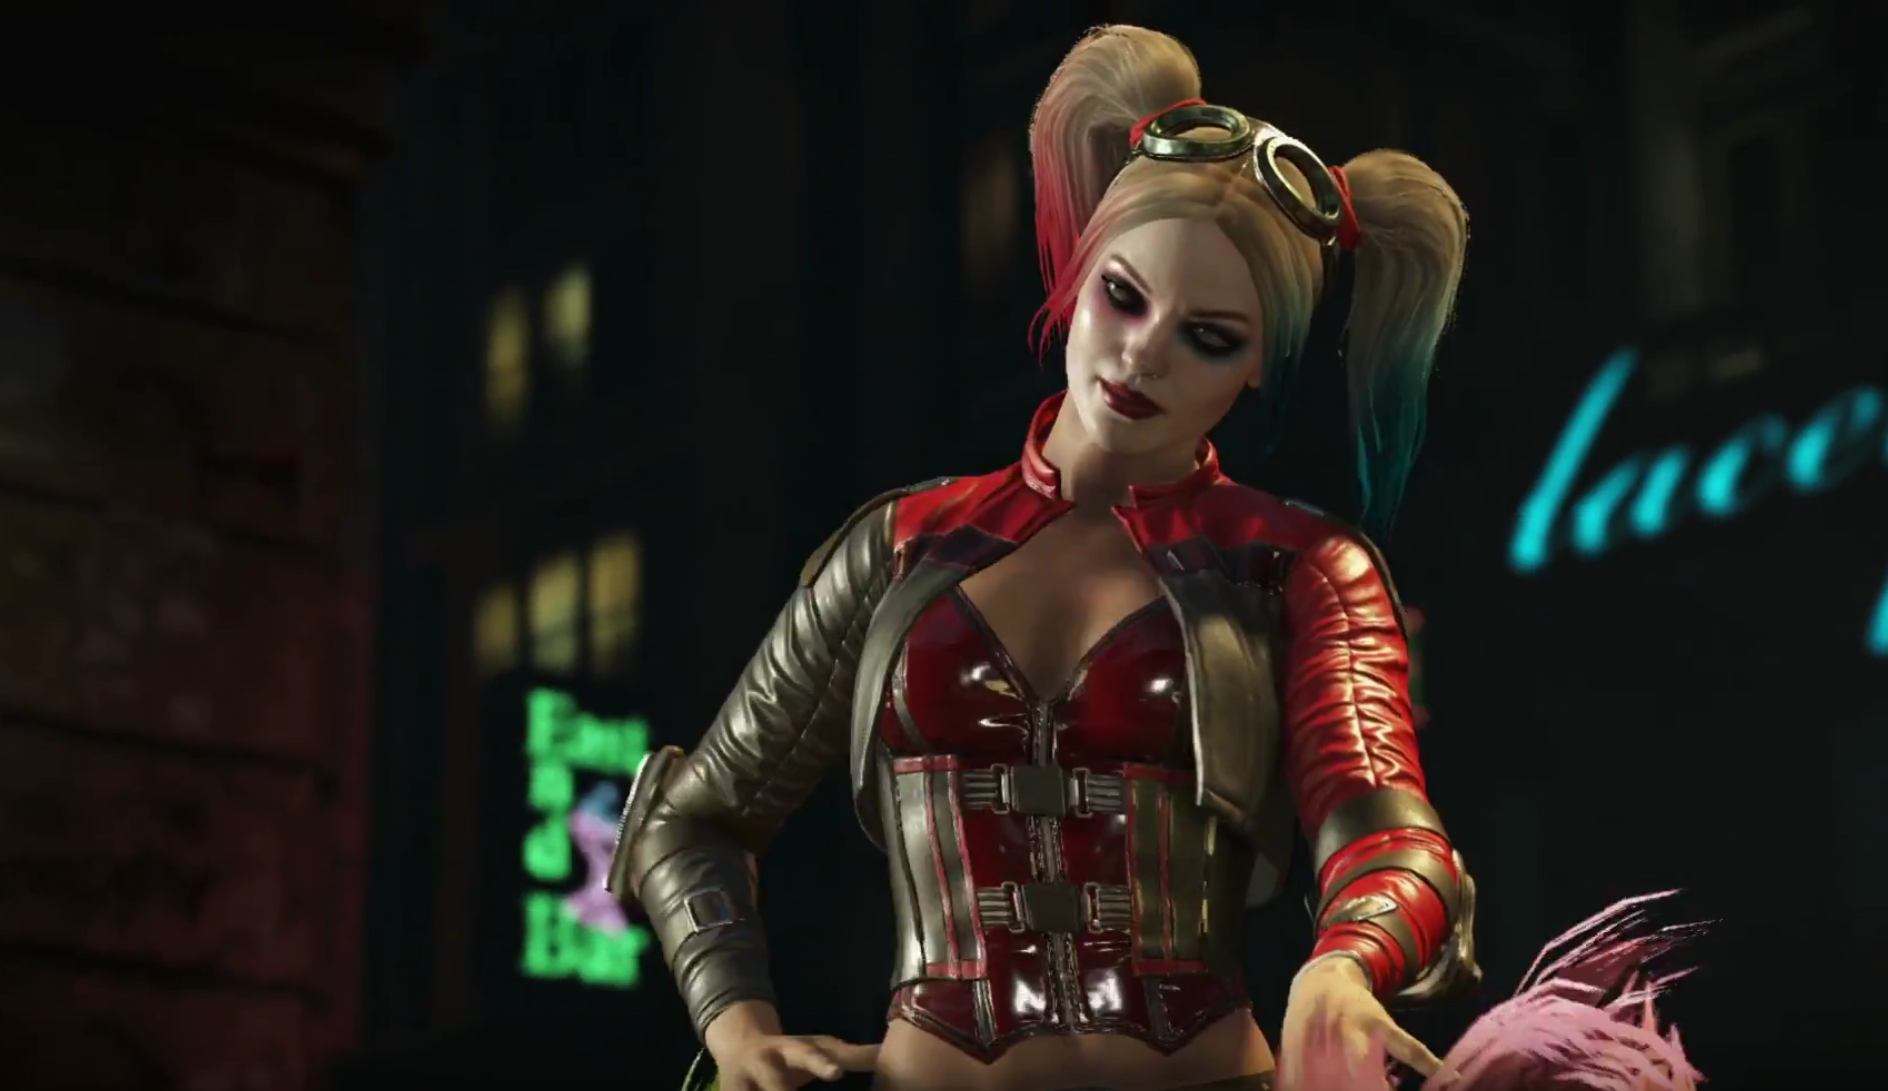 Harley Quinn Injustice 2 Wallpaper: Harley Quinn And Deadshot To Appear In Injustice 2